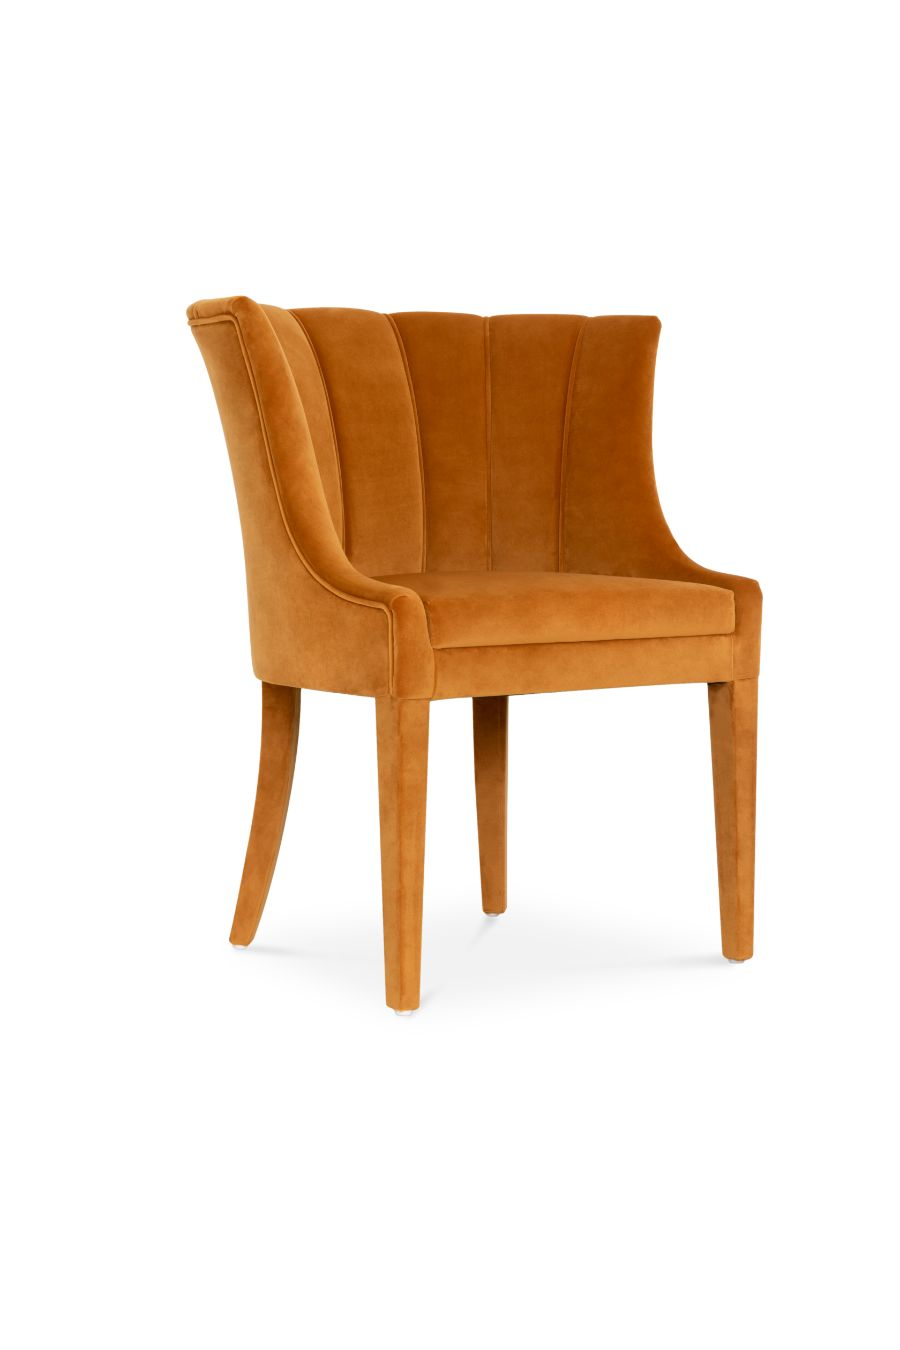 Autumn Colours 2021: Modern Chairs Options to Update Your Home